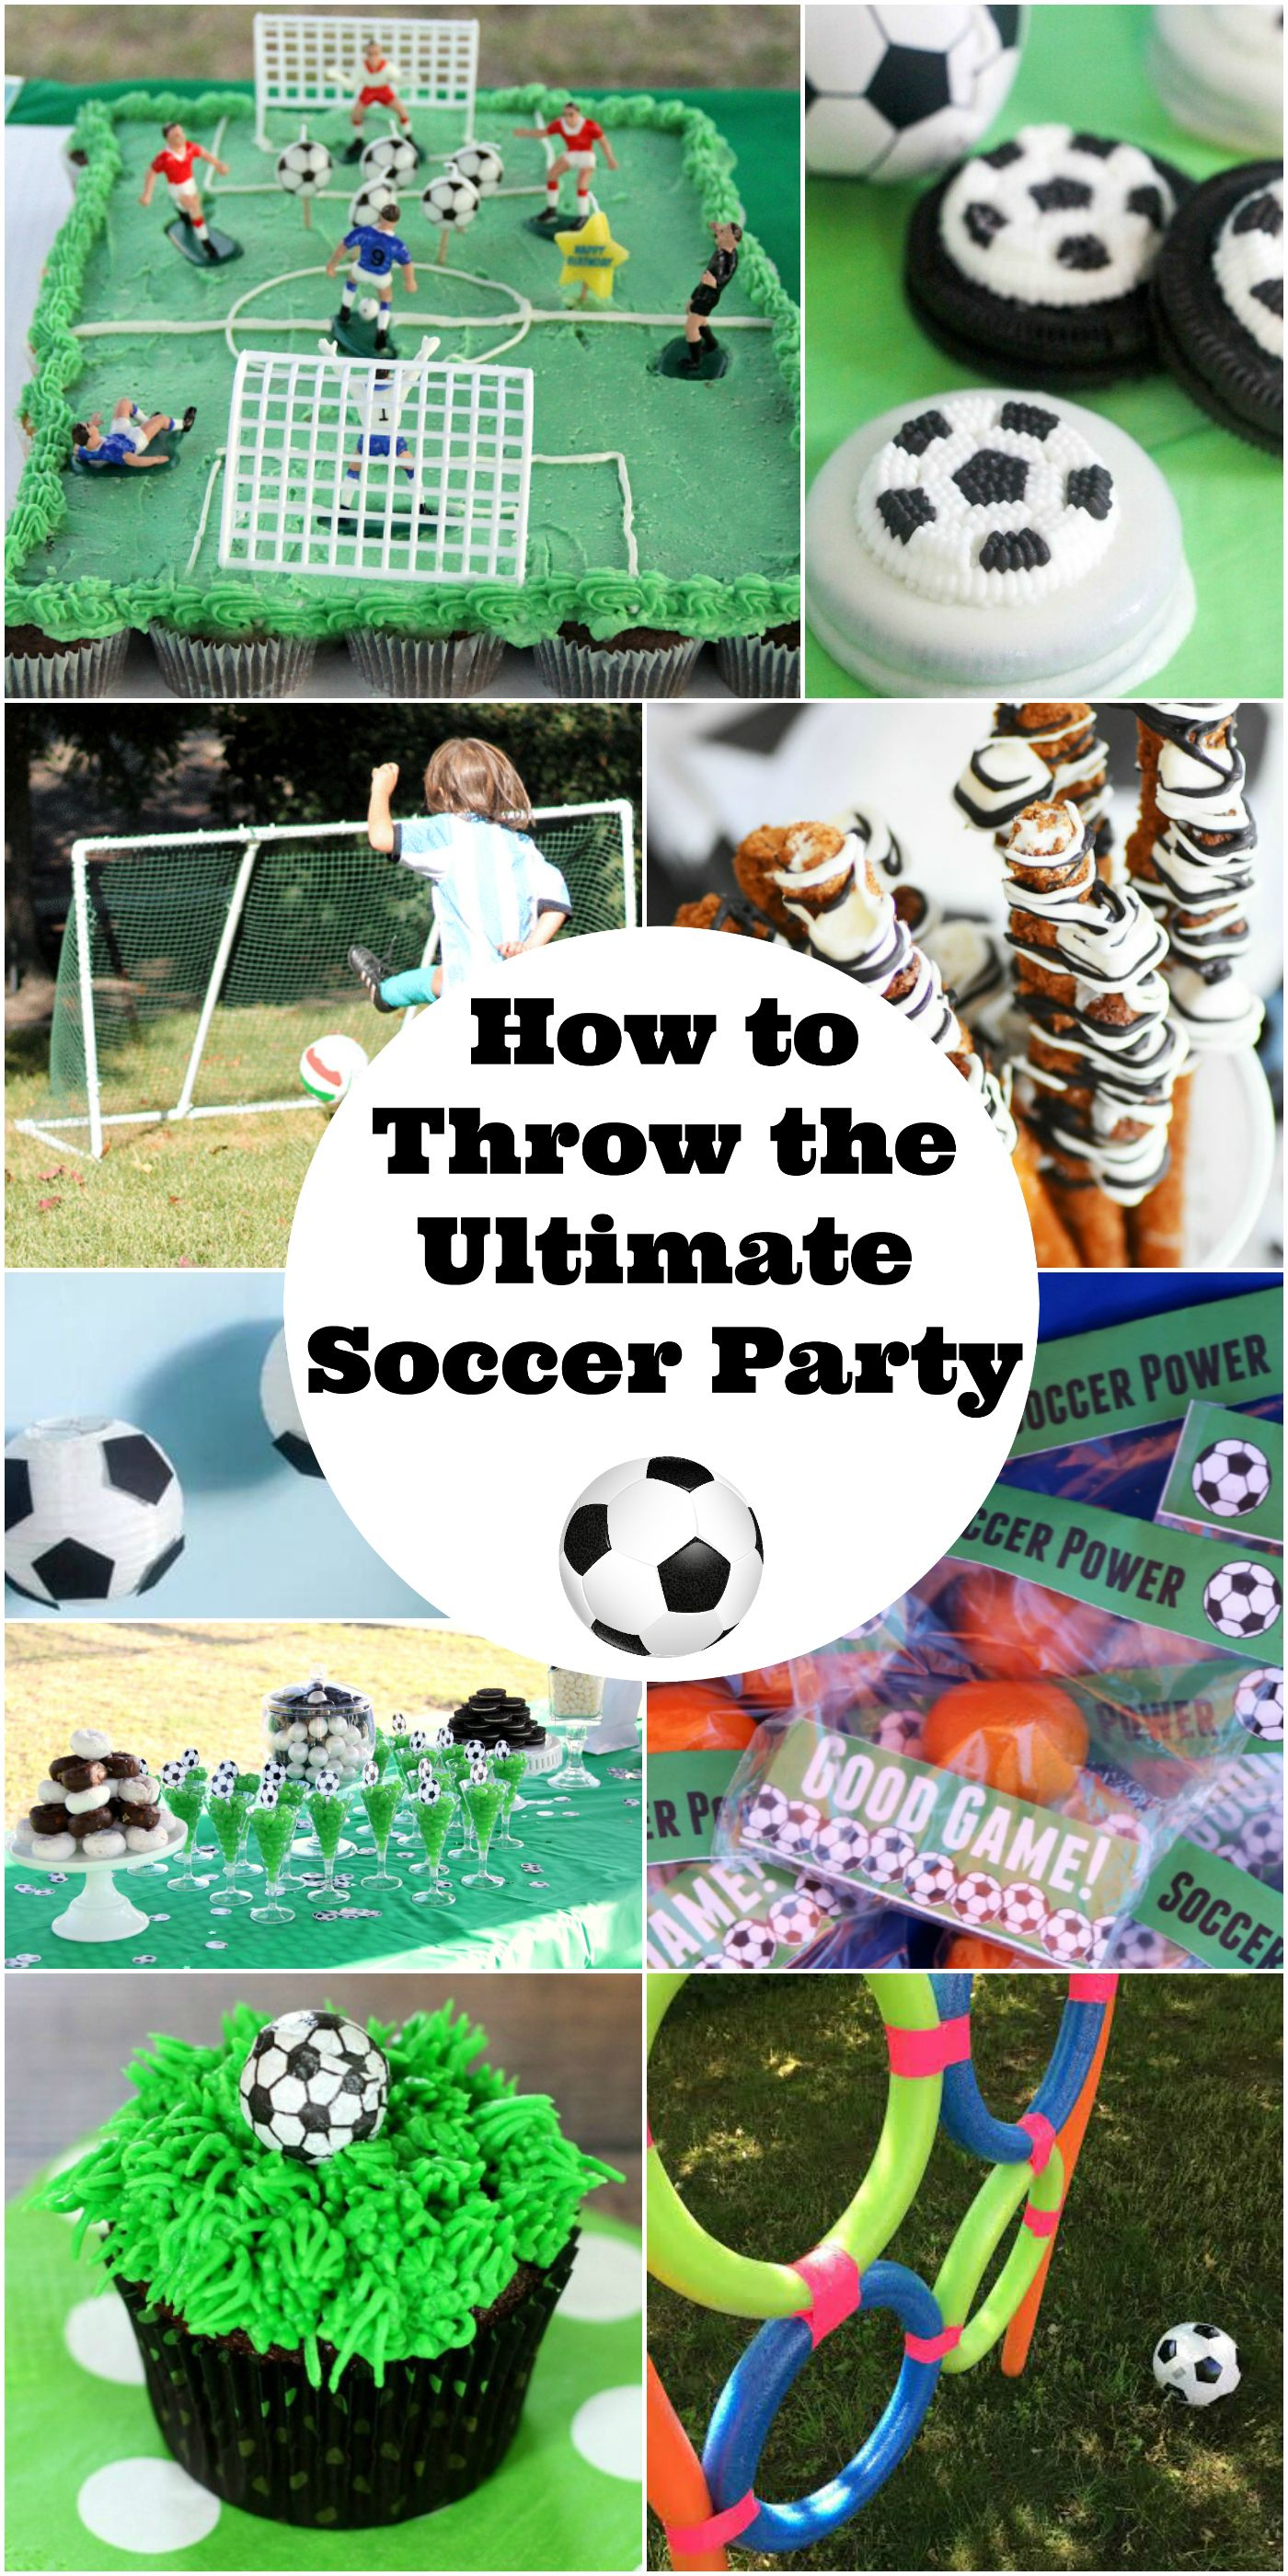 25 Fabulous Ideas For Throwing The Ultimate End Of Year Soccer Party Or Soccer Birthday Soccer Theme Parties Soccer Birthday Parties Boys Soccer Birthday Party